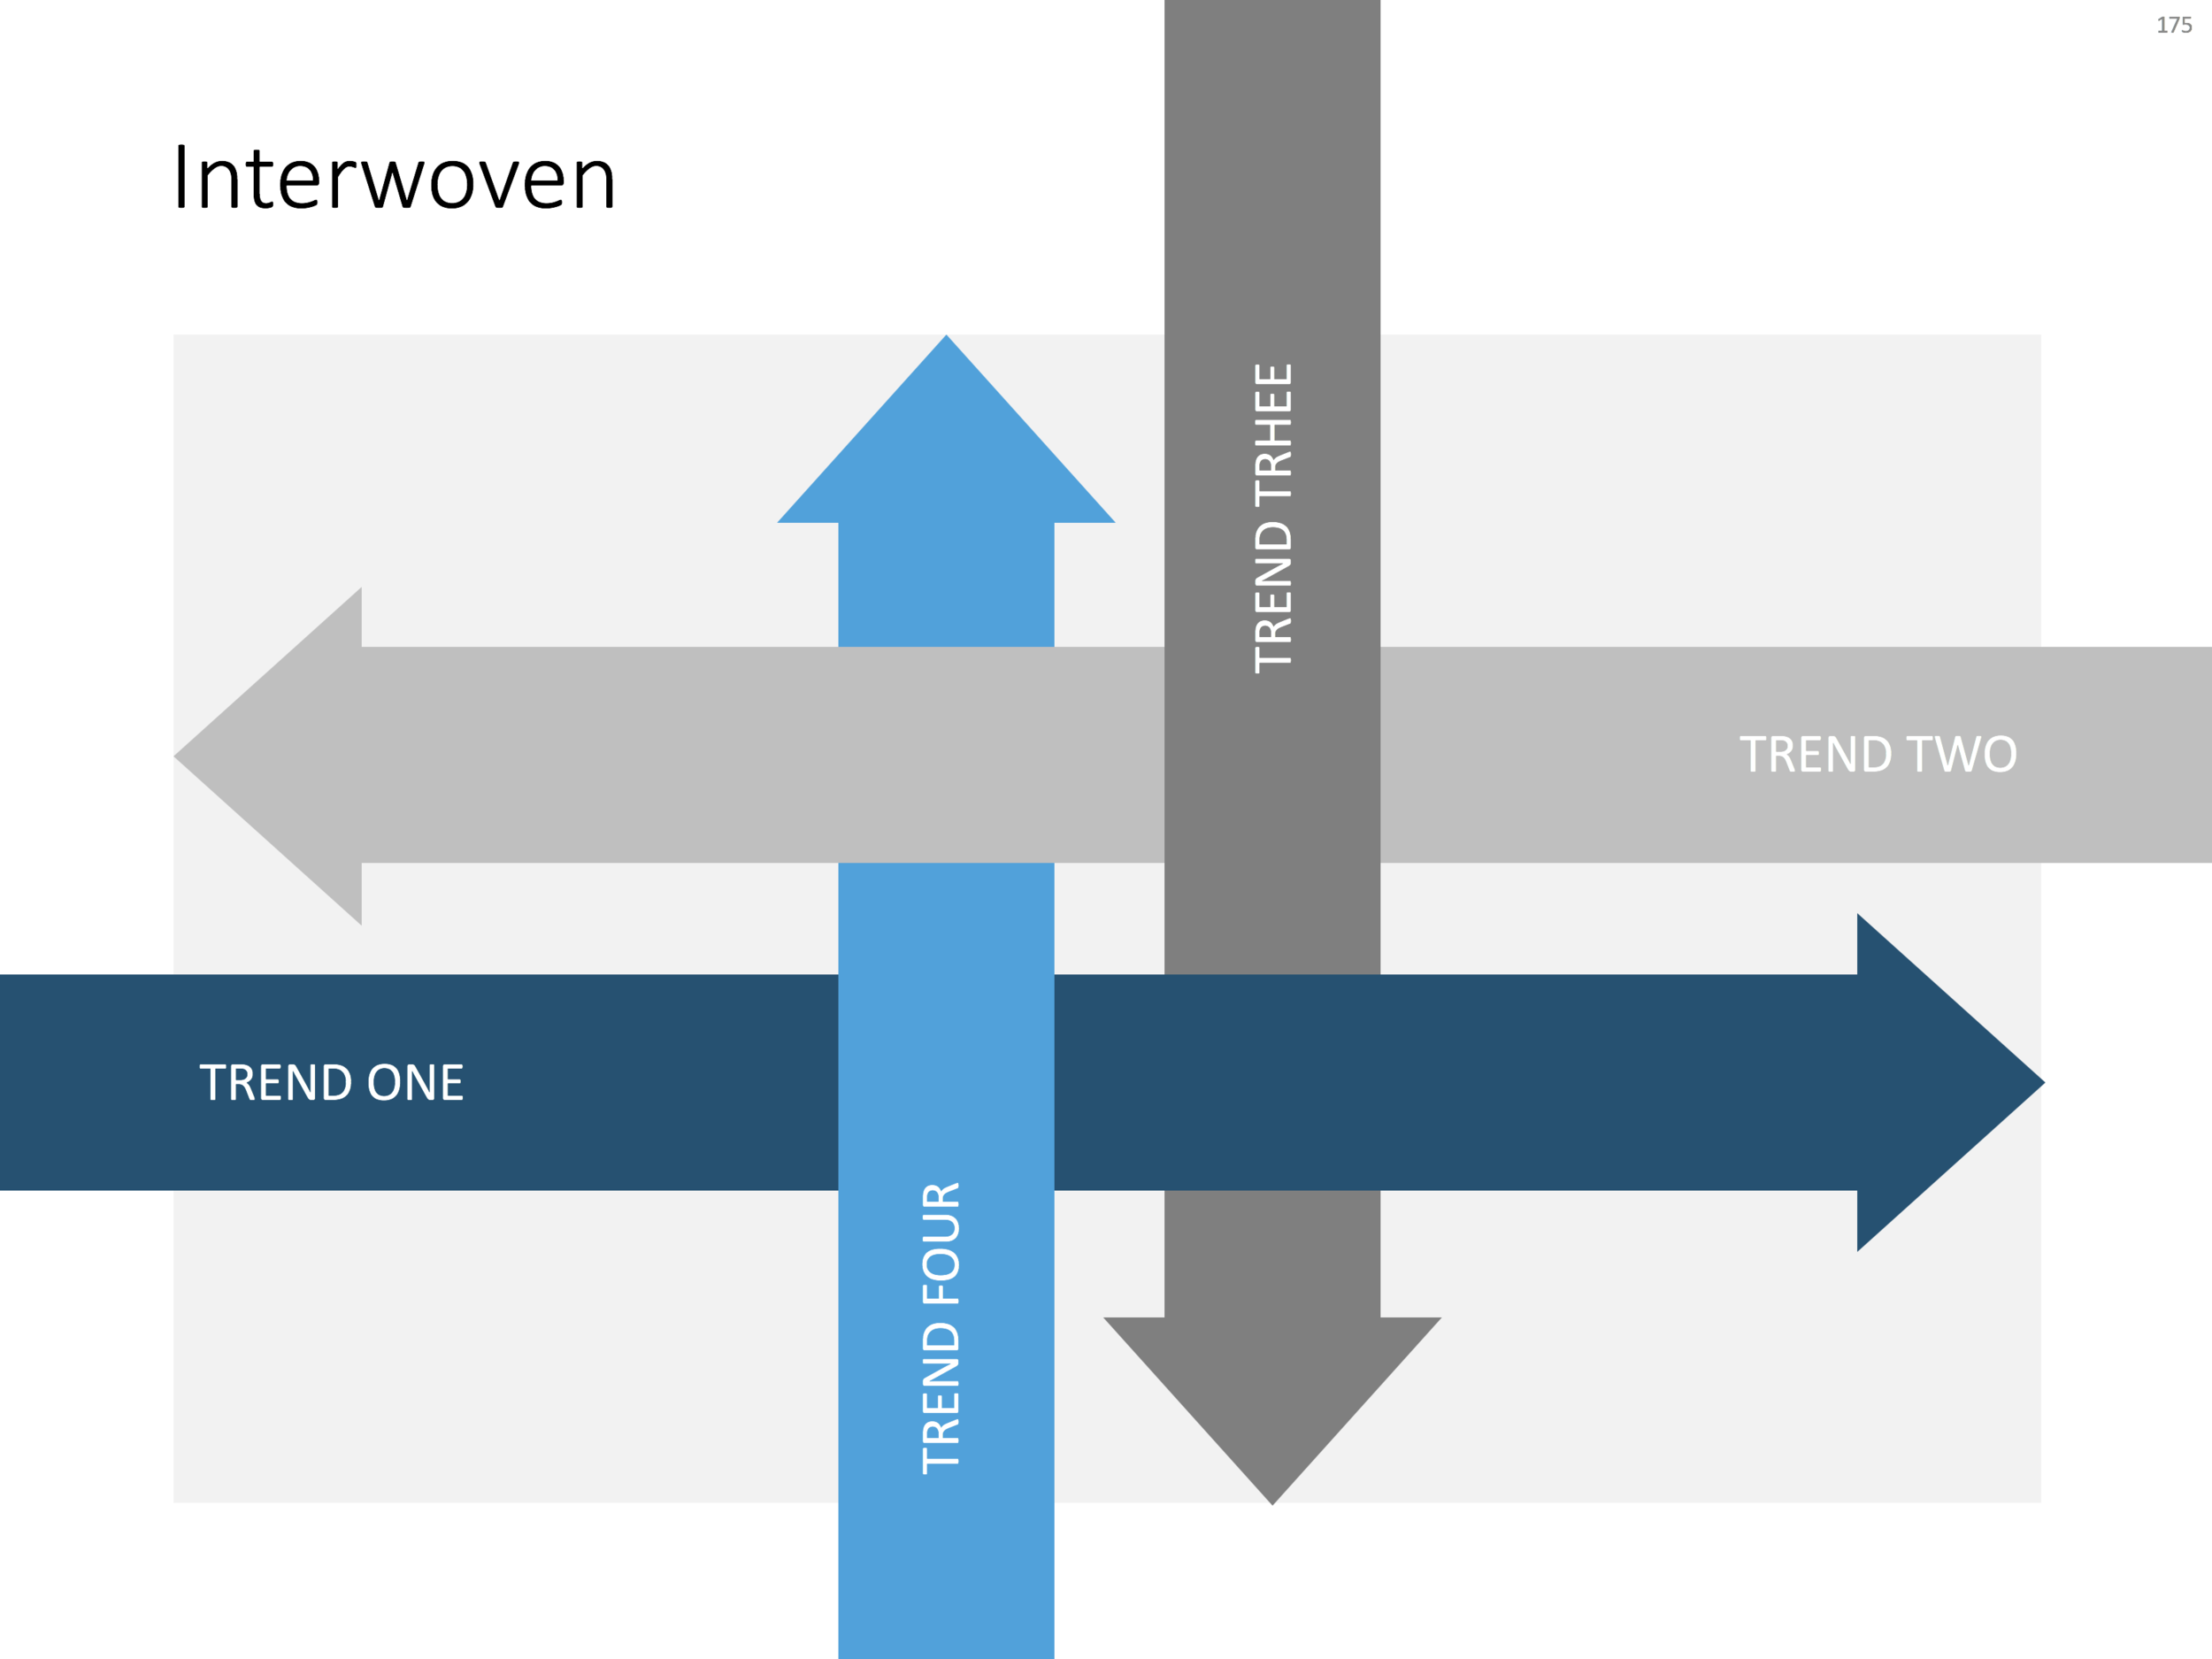 Layered PowerPoint arrows give a fabric or knot type slide layout